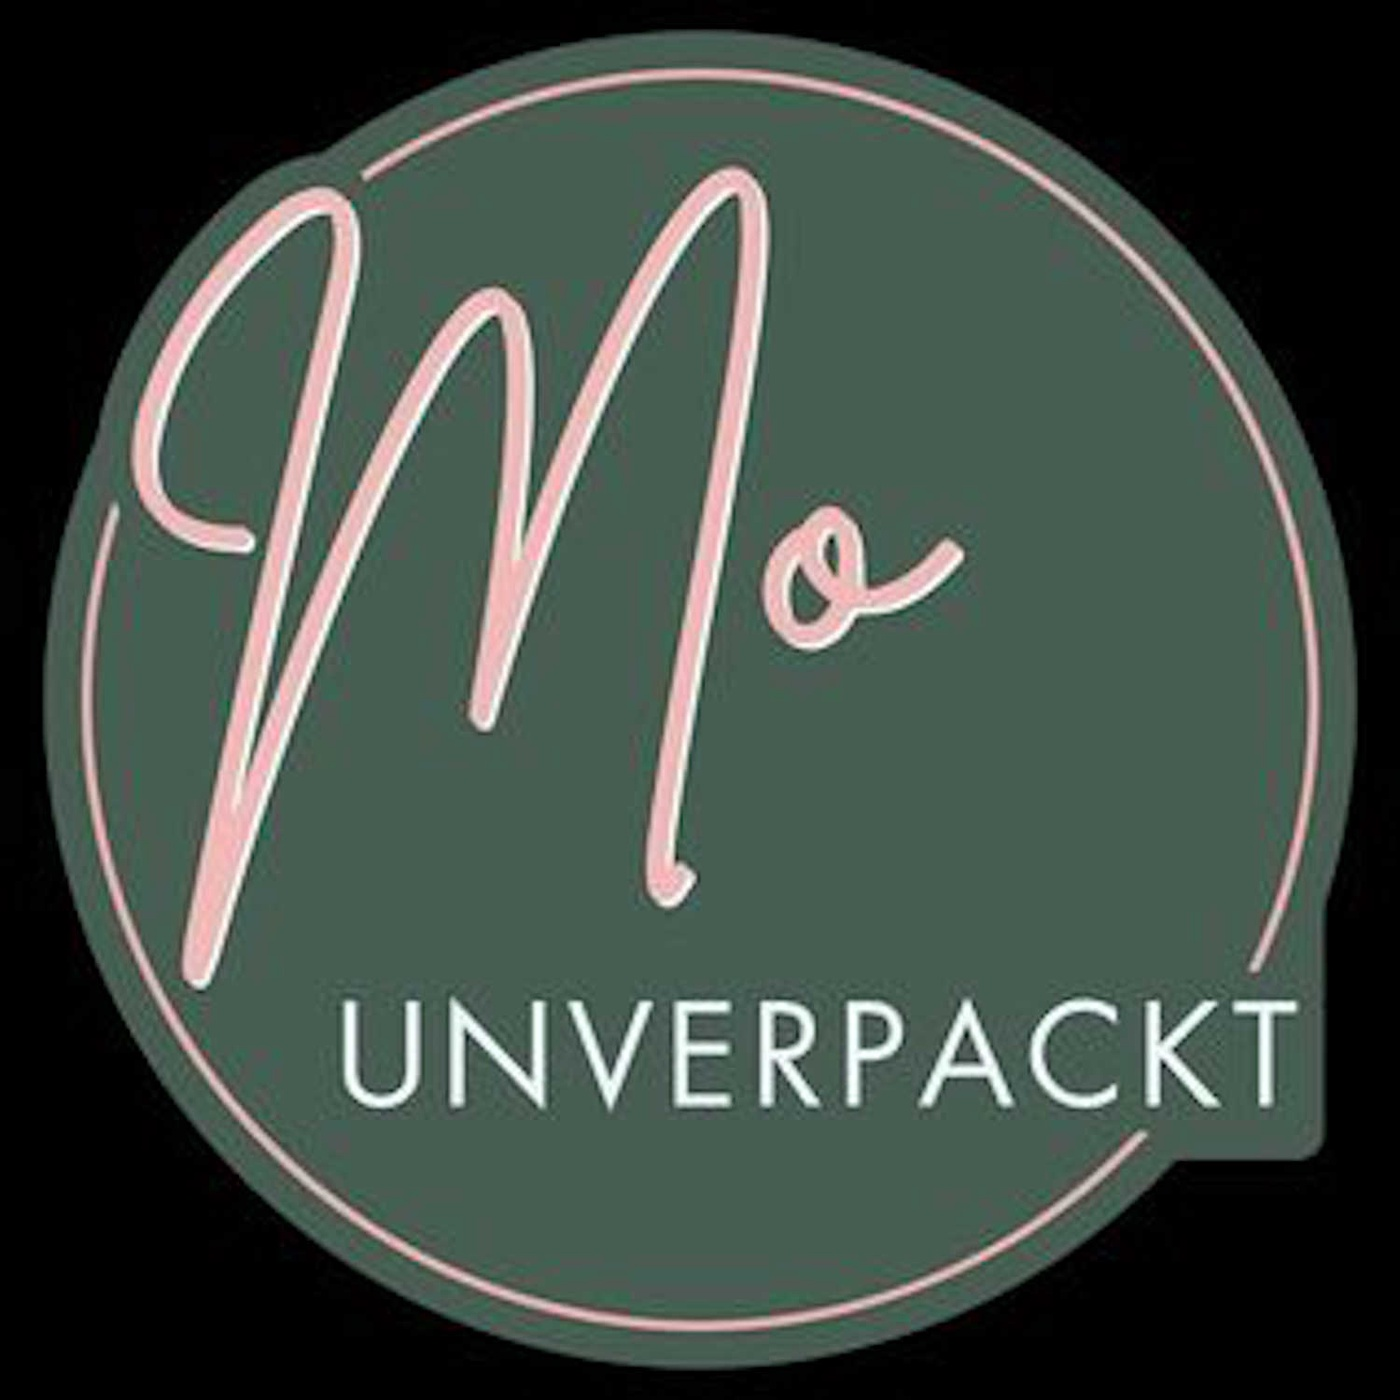 Mo Unverpackt